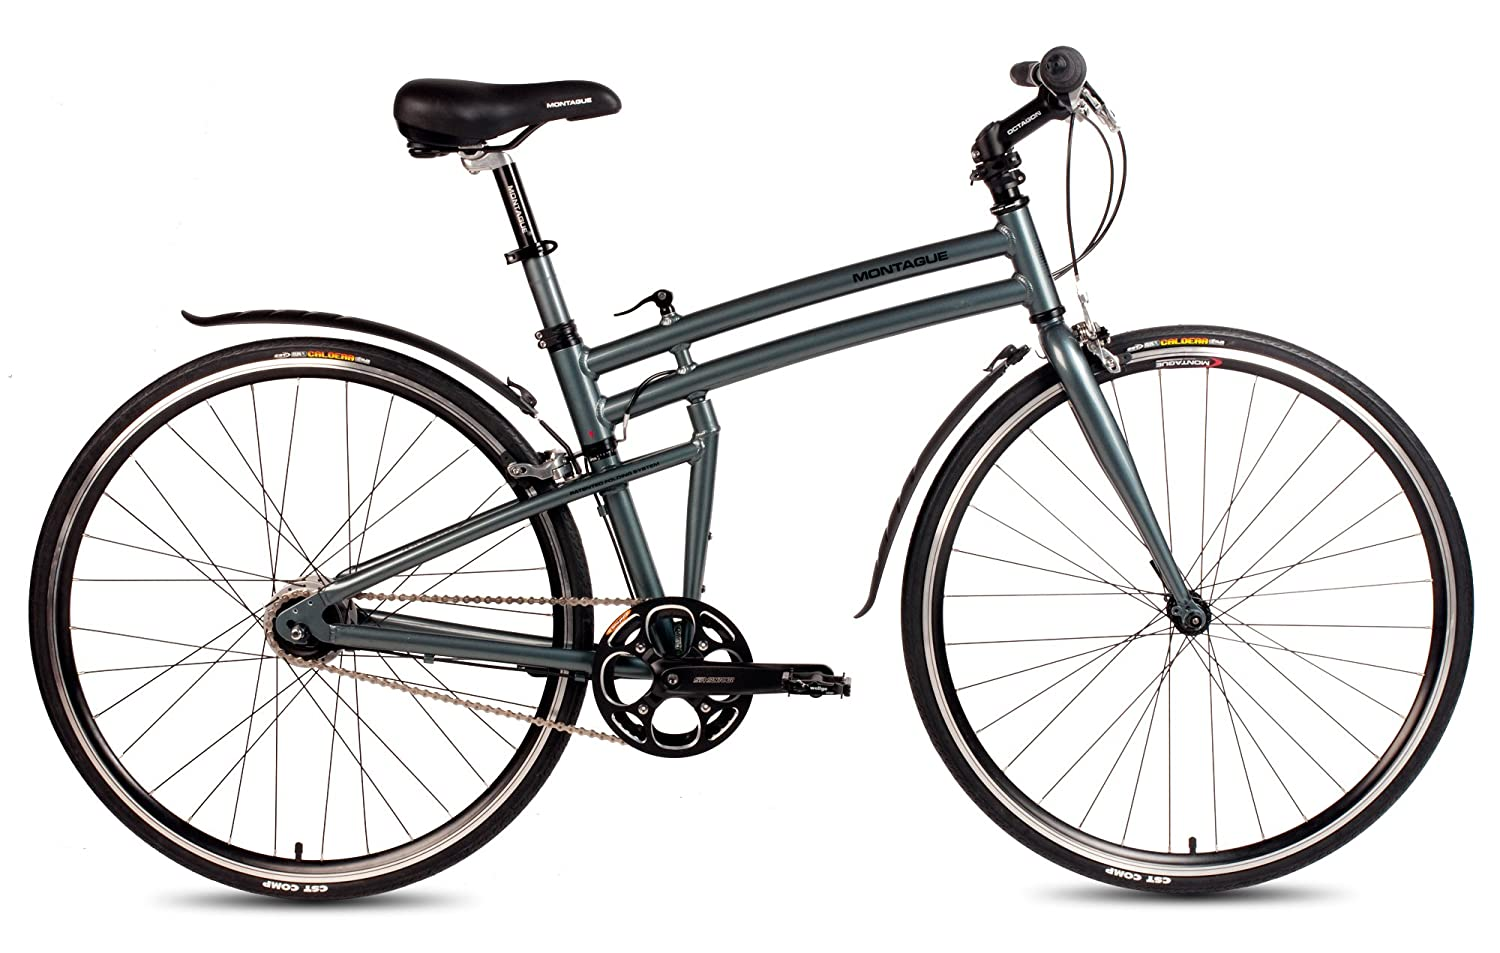 2015 Montague Boston 8 Internal 8-Speed 700c Hybrid Commuter Bicycle 17